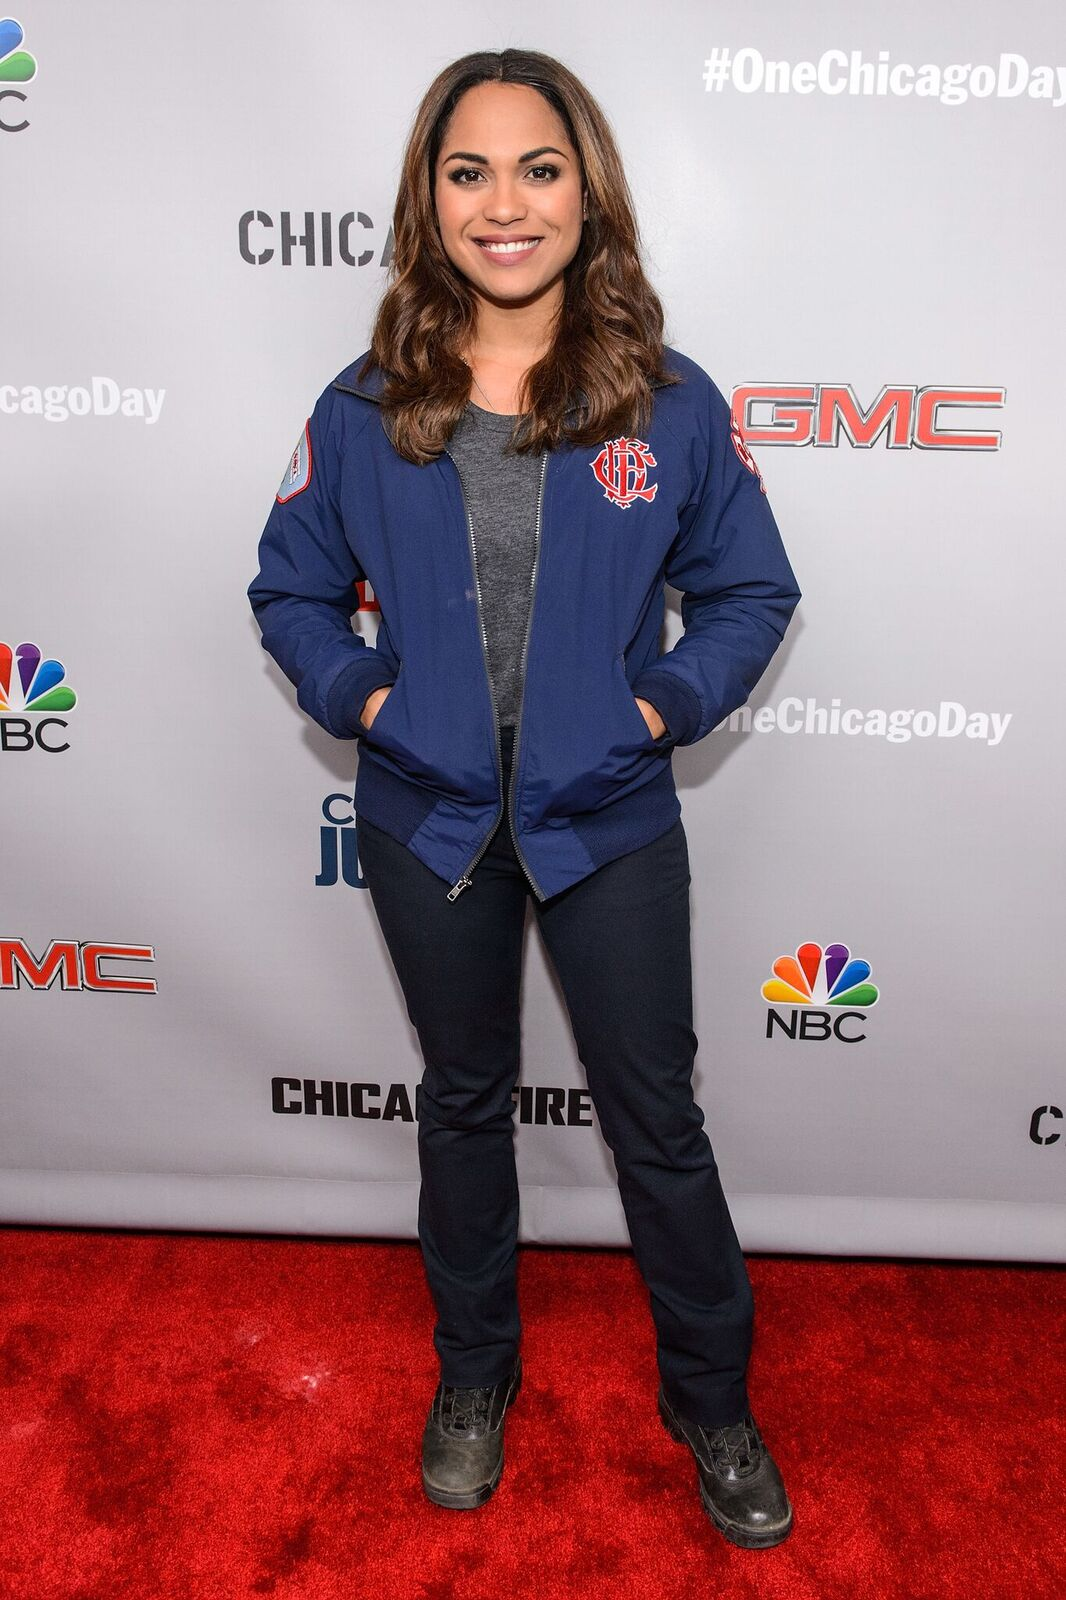 Monica Raymund attends NBC's Chicago series press day on October 24, 2016 in Chicago, Illinois | Photo: Getty Images